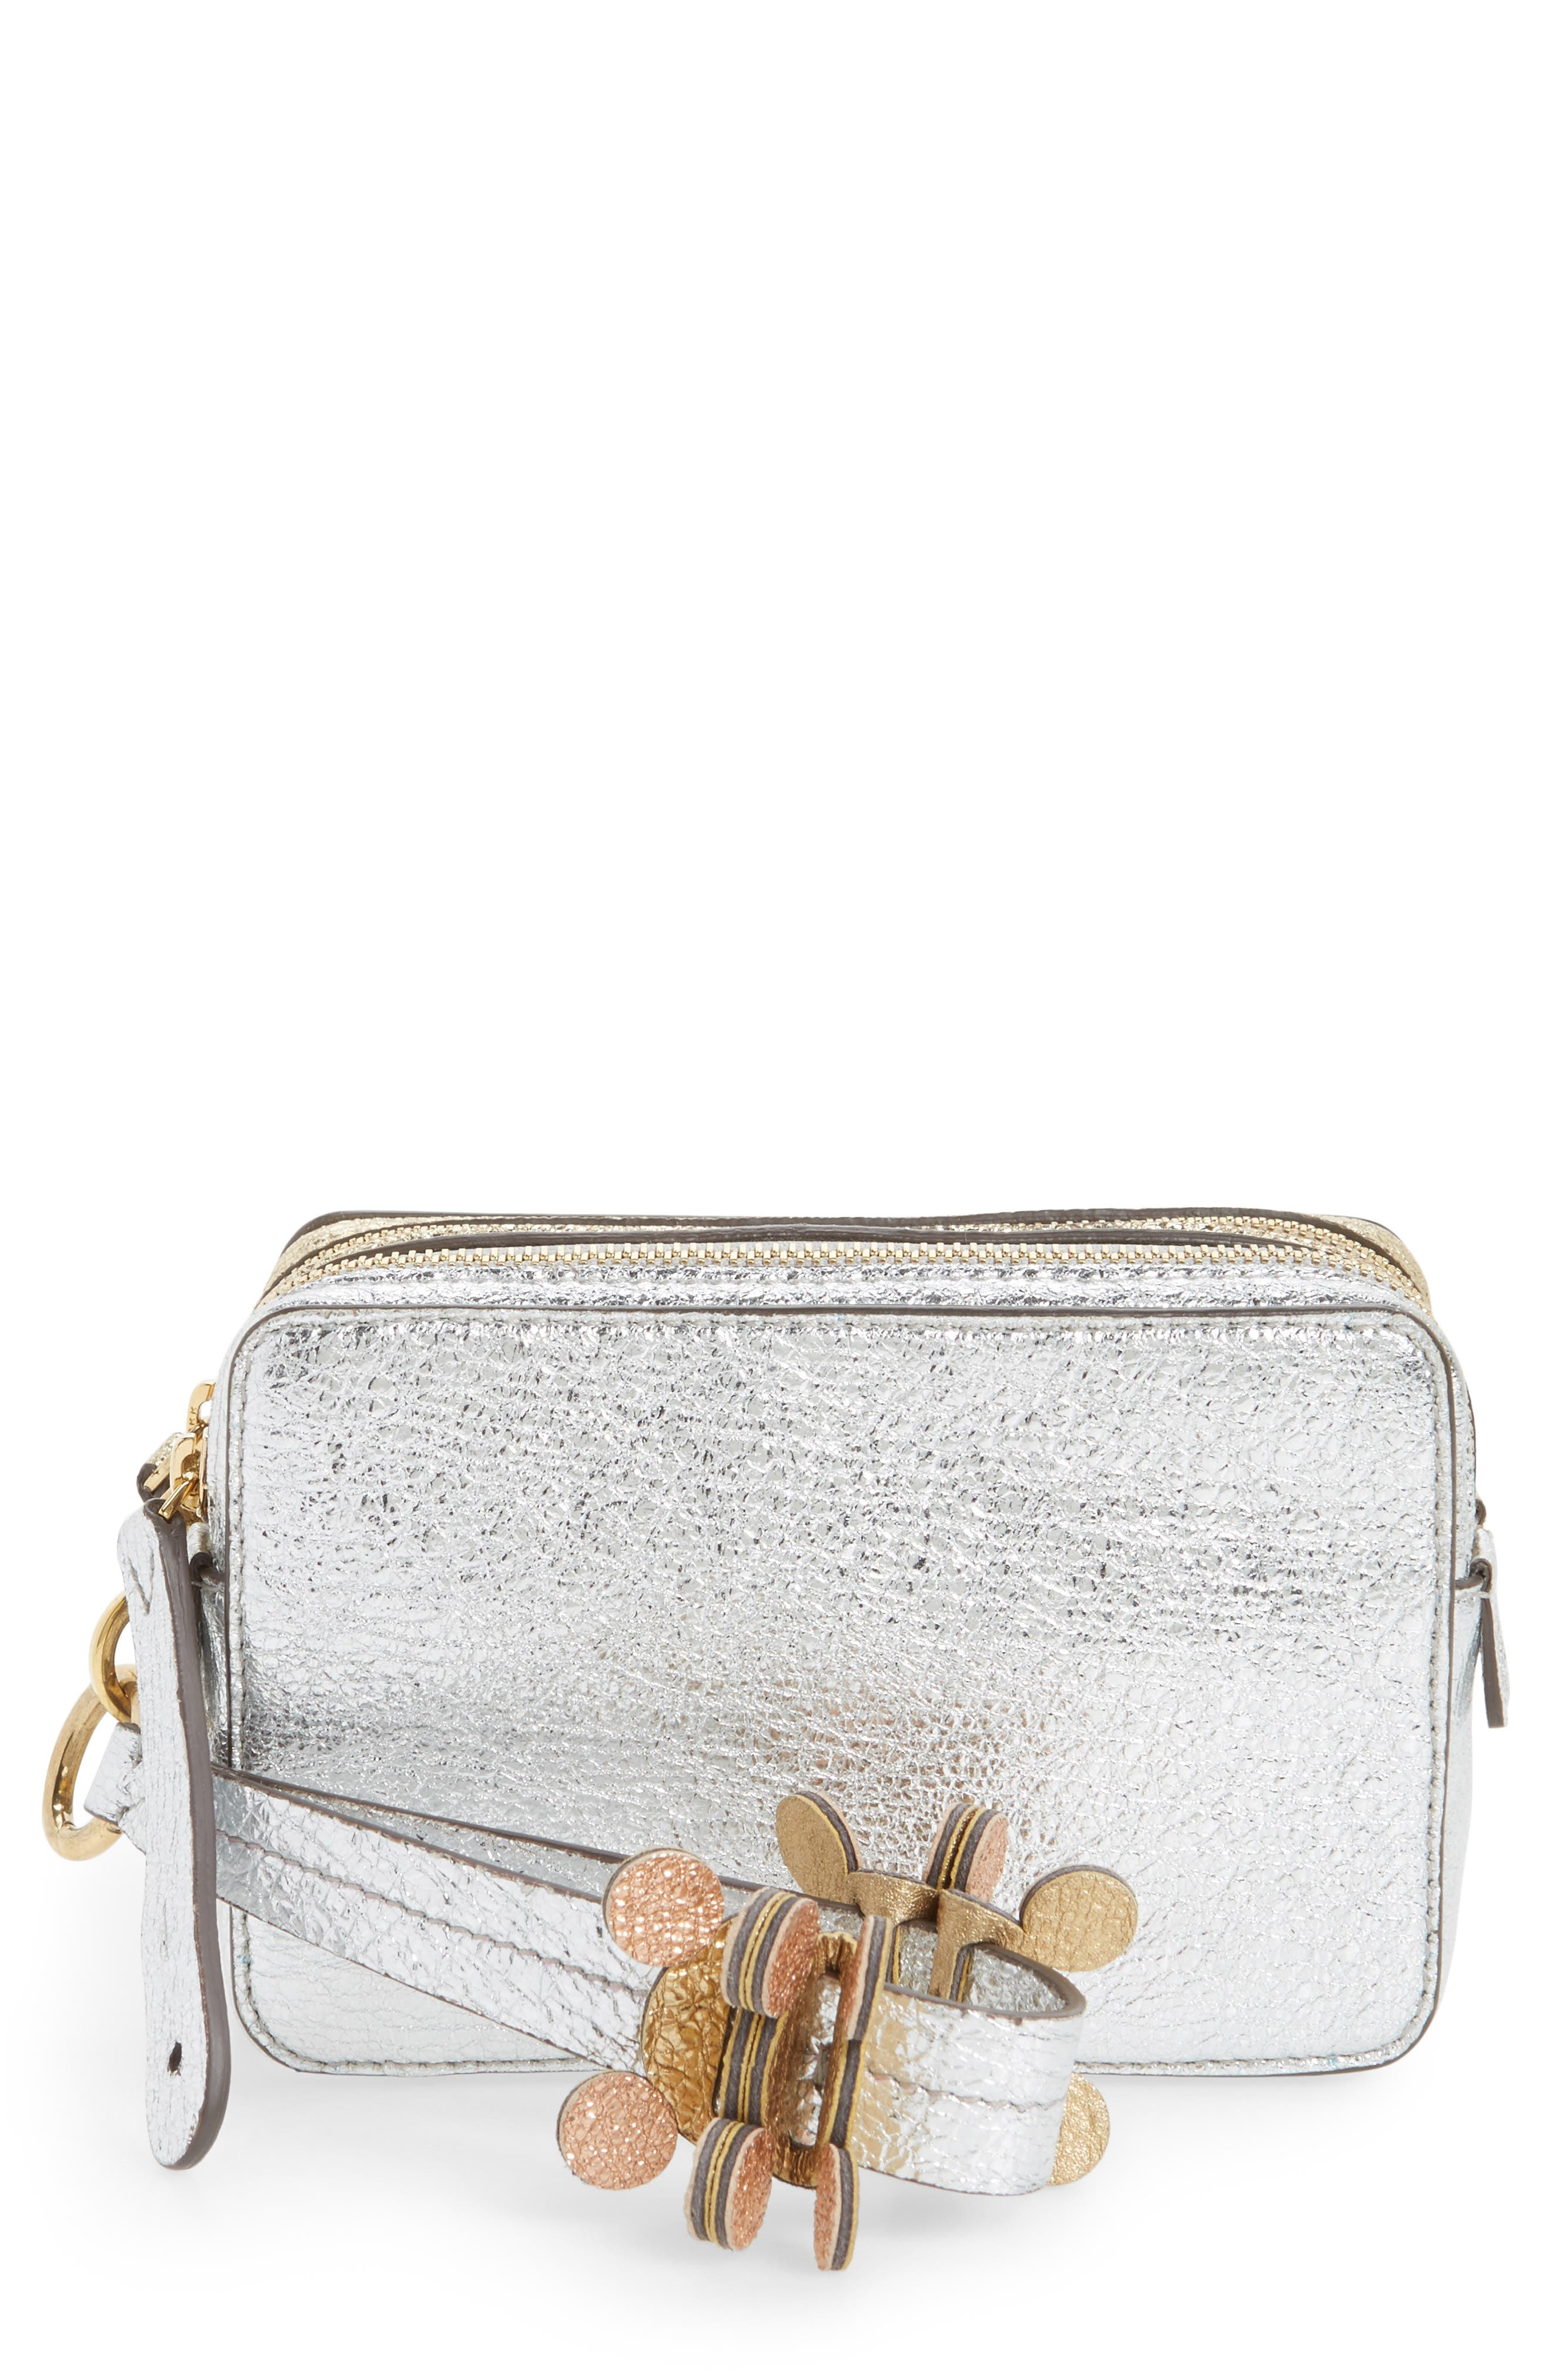 Anya Hindmarch The Double Stack Metallic Leather Clutch